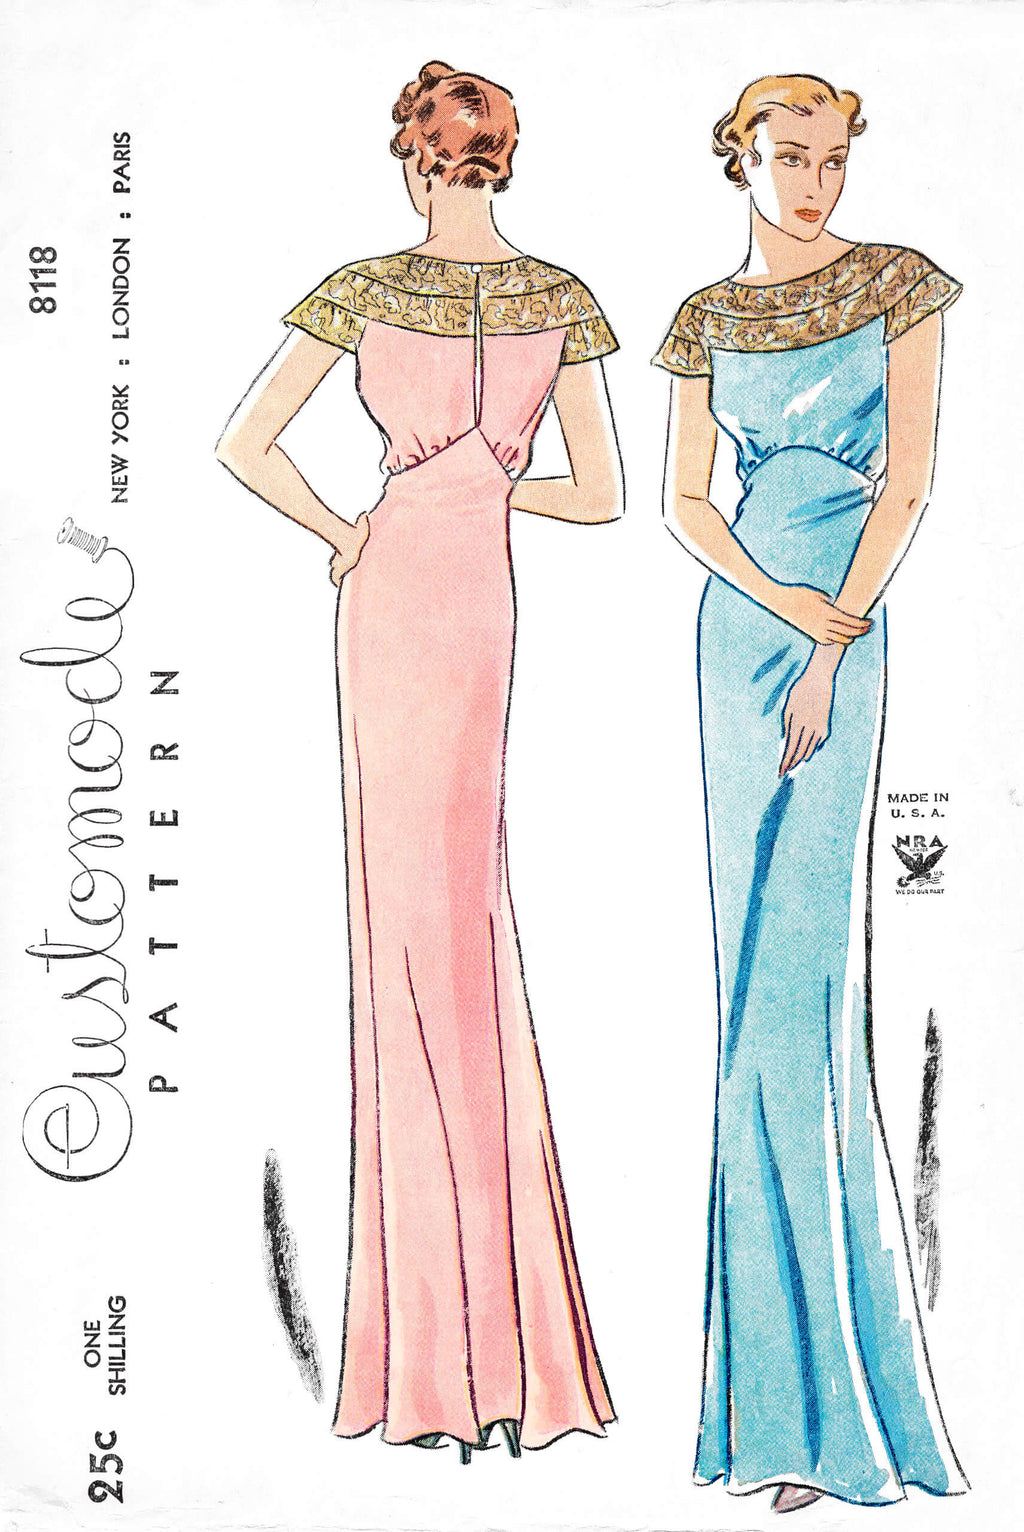 1930s 30s Simplicity Customode 8118 evening gown bias cut dress molded cap sleeves vintage sewing pattern reproduction